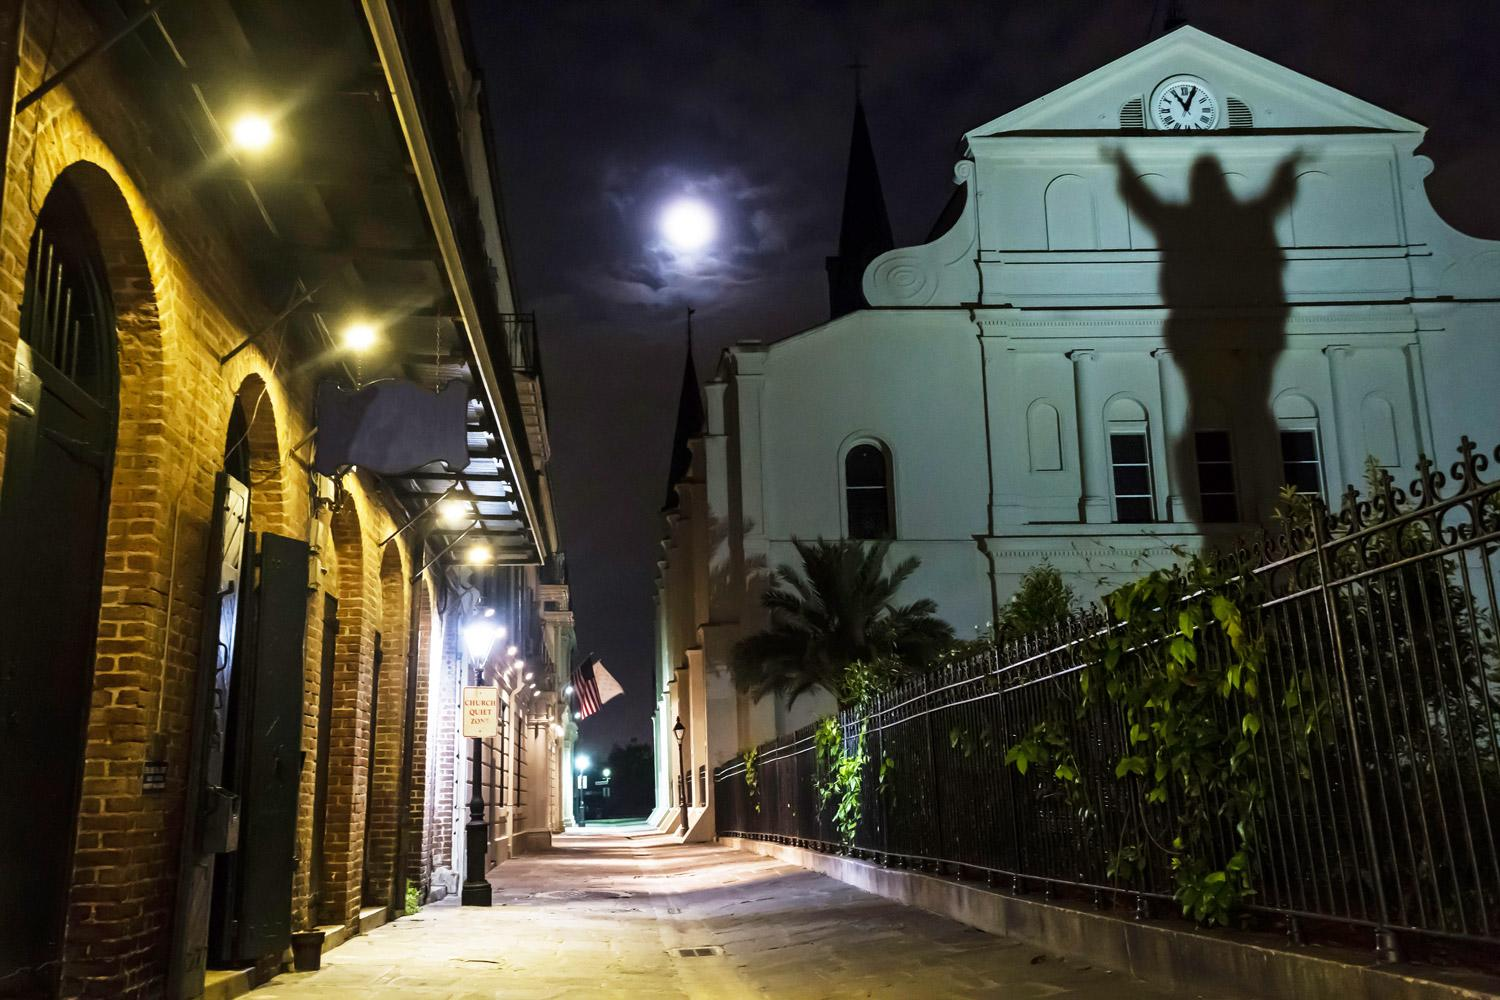 """<p><strong>What's scary:</strong> Full of """"cities of the dead,"""" the home of Voodoo, and the site of various murders, brothels, intrigue, and general debauchery, New Orleans, Louisiana, has endless horror stories and myths. The <strong><a href=""""http://www.neworleansghostadventurestour.com/ghost.html"""" rel=""""nofollow noopener"""" target=""""_blank"""" data-ylk=""""slk:Ghost Adventures Haunted Houses Tour"""" class=""""link rapid-noclick-resp"""">Ghost Adventures Haunted Houses Tour</a></strong>, led by historians and history buffs, seeks to separate New Orleans's French Quarter's legends from its history with a tour founded in fact and research.</p><p><strong>Take the tour: </strong>The Ghost Adventures Haunted Houses Tour (<a href=""""http://www.neworleansghostadventurestour.com"""" rel=""""nofollow noopener"""" target=""""_blank"""" data-ylk=""""slk:neworleansghostadventurestour.com"""" class=""""link rapid-noclick-resp"""">neworleansghostadventurestour.com</a> or 504-475-5214) offers the rare opportunity to visit and step inside locations investigated by the ghost hunters of <strong><a href=""""http://www.travelchannel.com/shows/ghost-adventures"""" rel=""""nofollow noopener"""" target=""""_blank"""" data-ylk=""""slk:Travel Channel's Ghost Adventures"""" class=""""link rapid-noclick-resp"""">Travel Channel's <em>Ghost Adventures</em></a></strong><em>. </em>Sign up for the two-hour tour at 5 or 8 p.m. on any day of the week. Tickets are $25 per person and free for children under the age of 6. Tour groups are arranged so visitors with children are together and can be adjusted to be more family-friendly.</p>"""